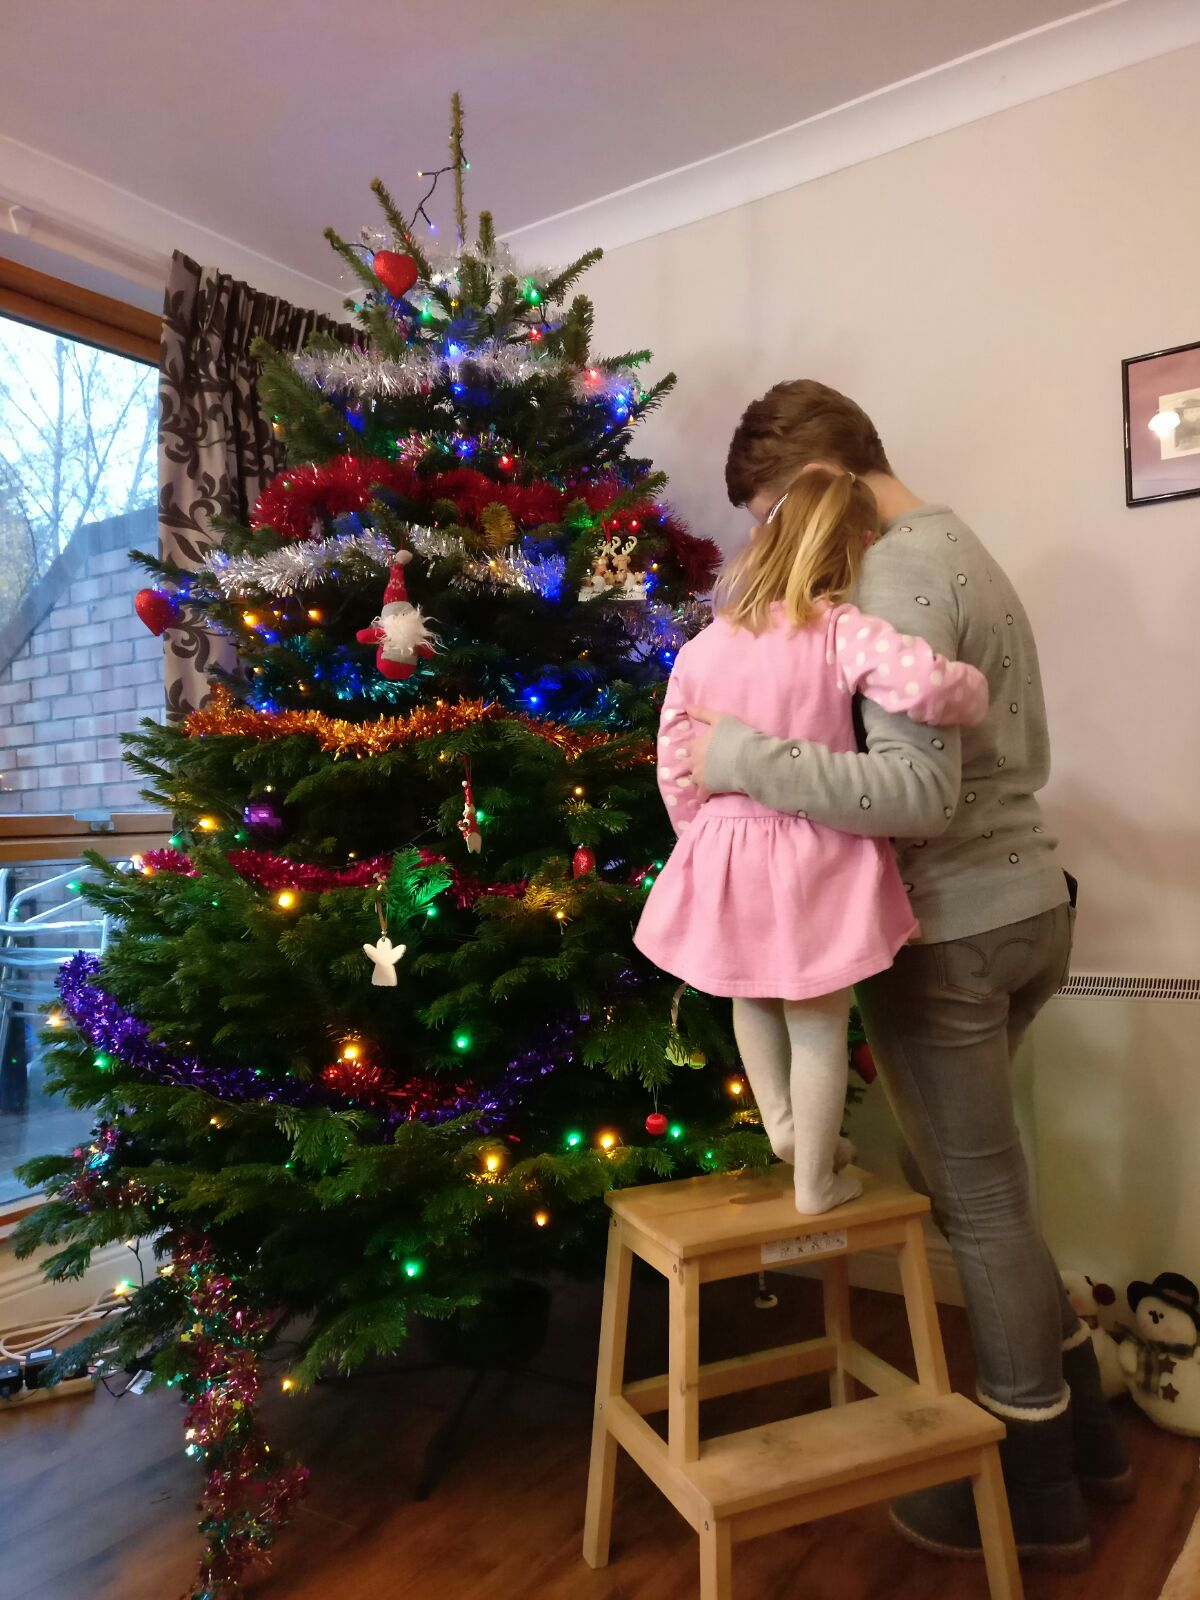 Scout & I hugging in front of Christmas tree, December 2016